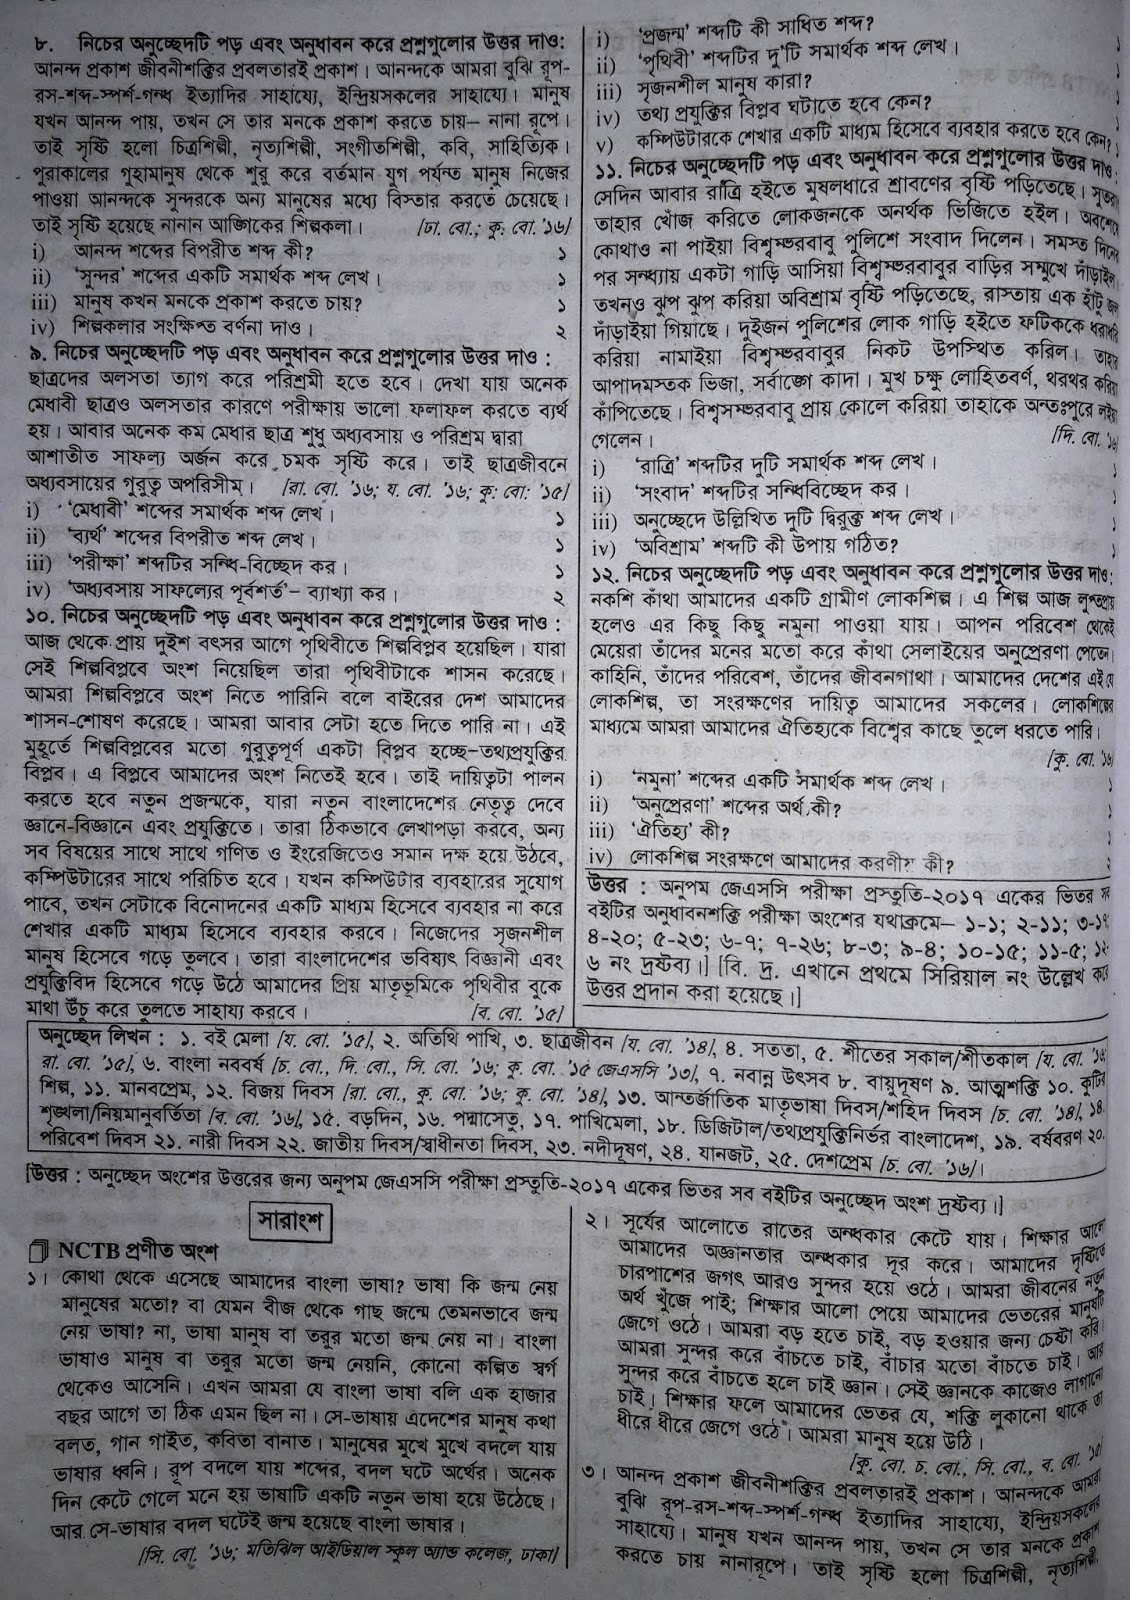 jsc bangla suggestion 2019, 2nd paper, exam question paper, model question, mcq question, question pattern, preparation for dhaka board, all boards